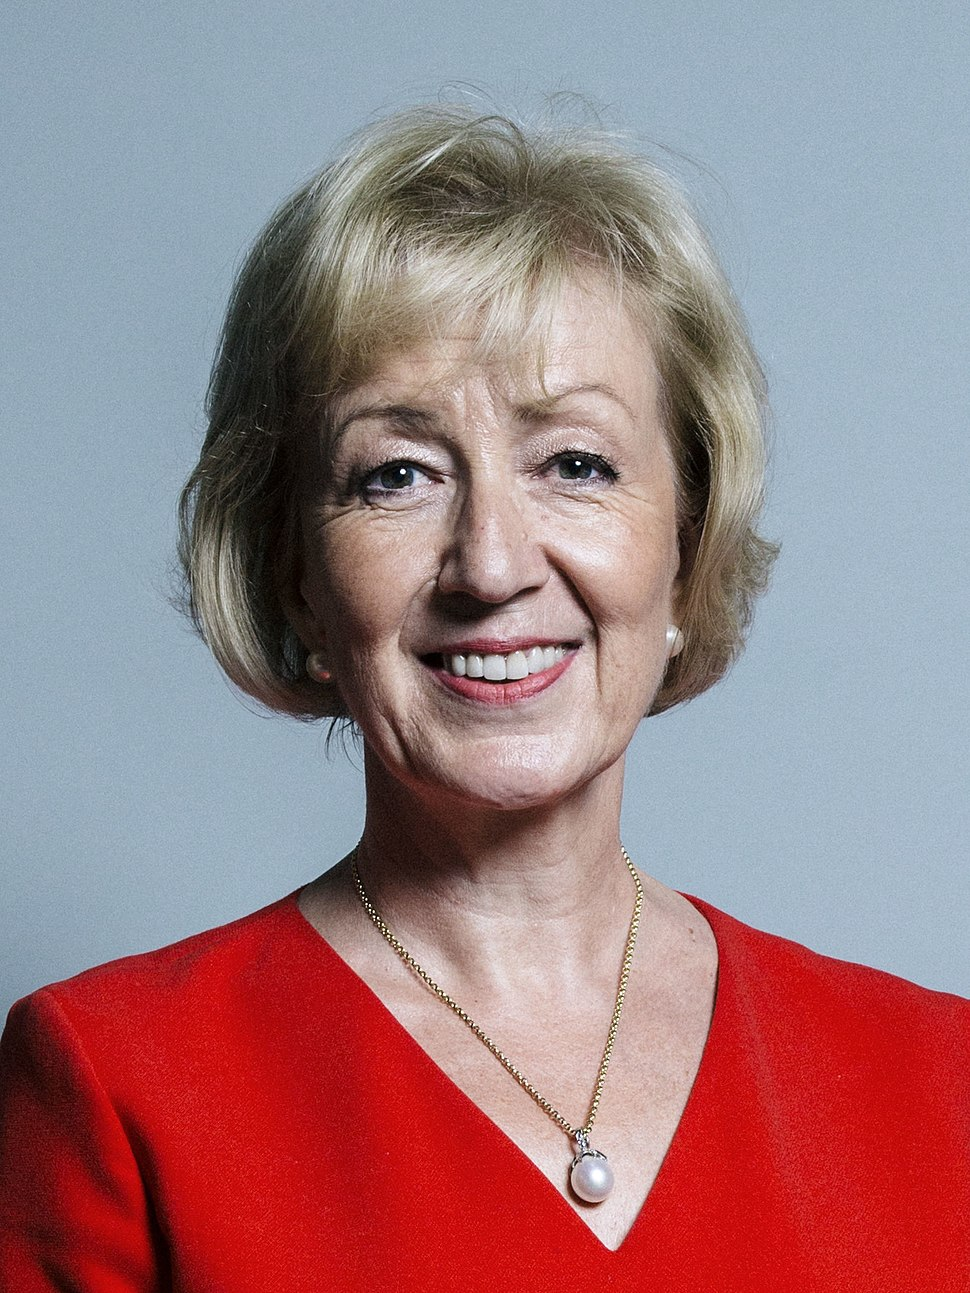 Official portrait of Andrea Leadsom crop 2